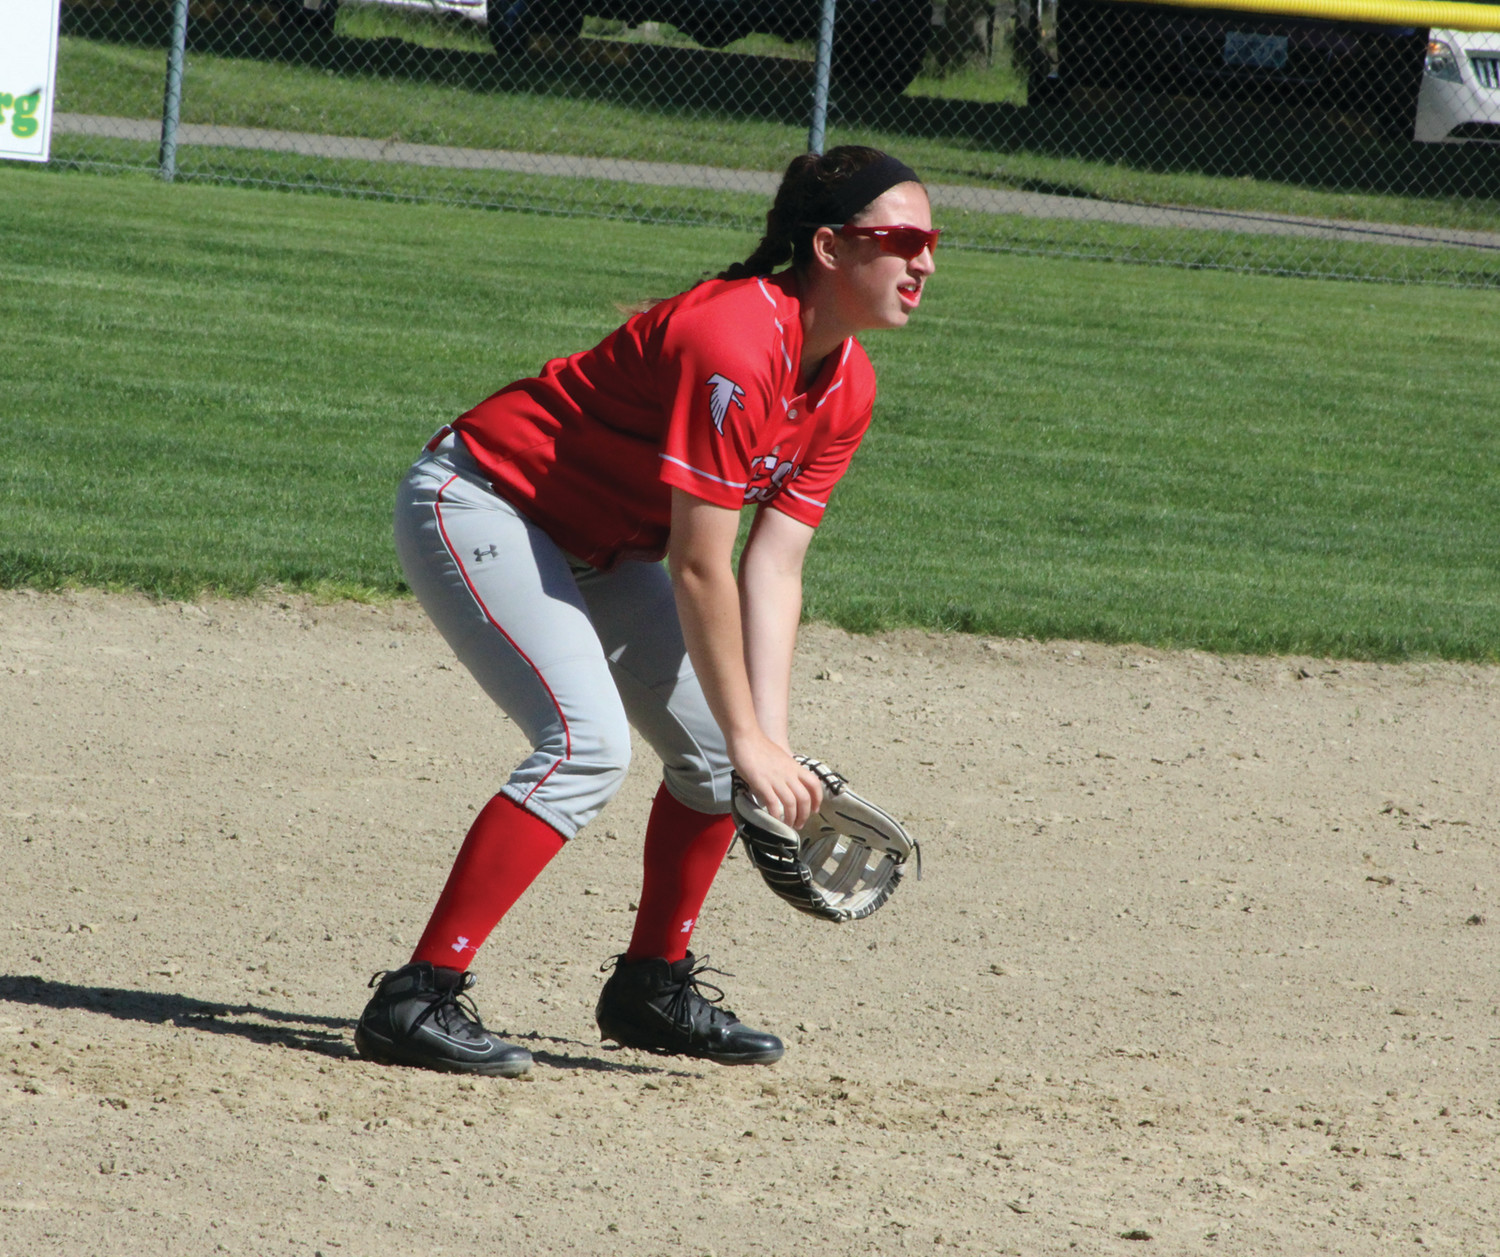 ON THE DIAMOND: Cranston West's Marissa Cushman plays shortstop. Bottom: